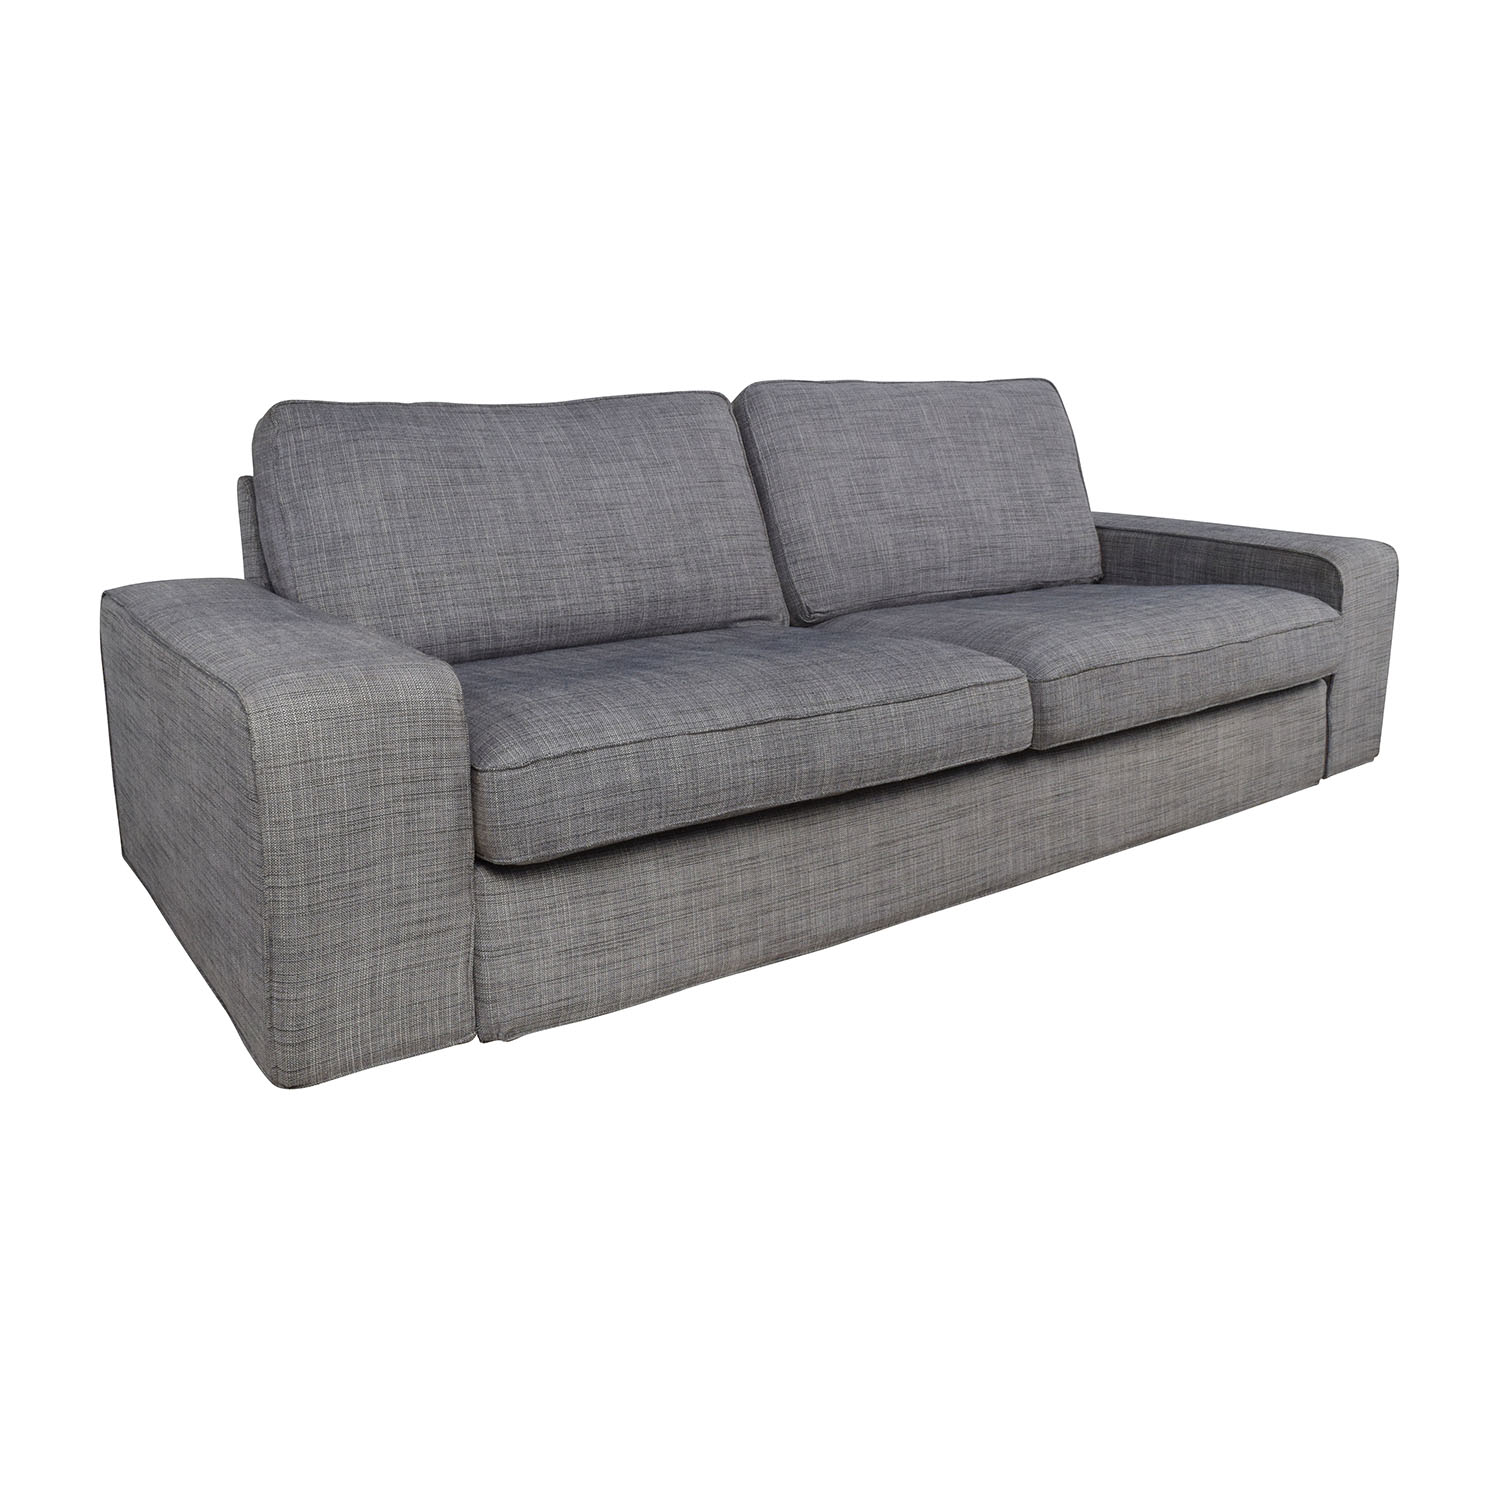 rp corner sofa cover off white curved ikea gray vimle with chaise gunnared medium ...